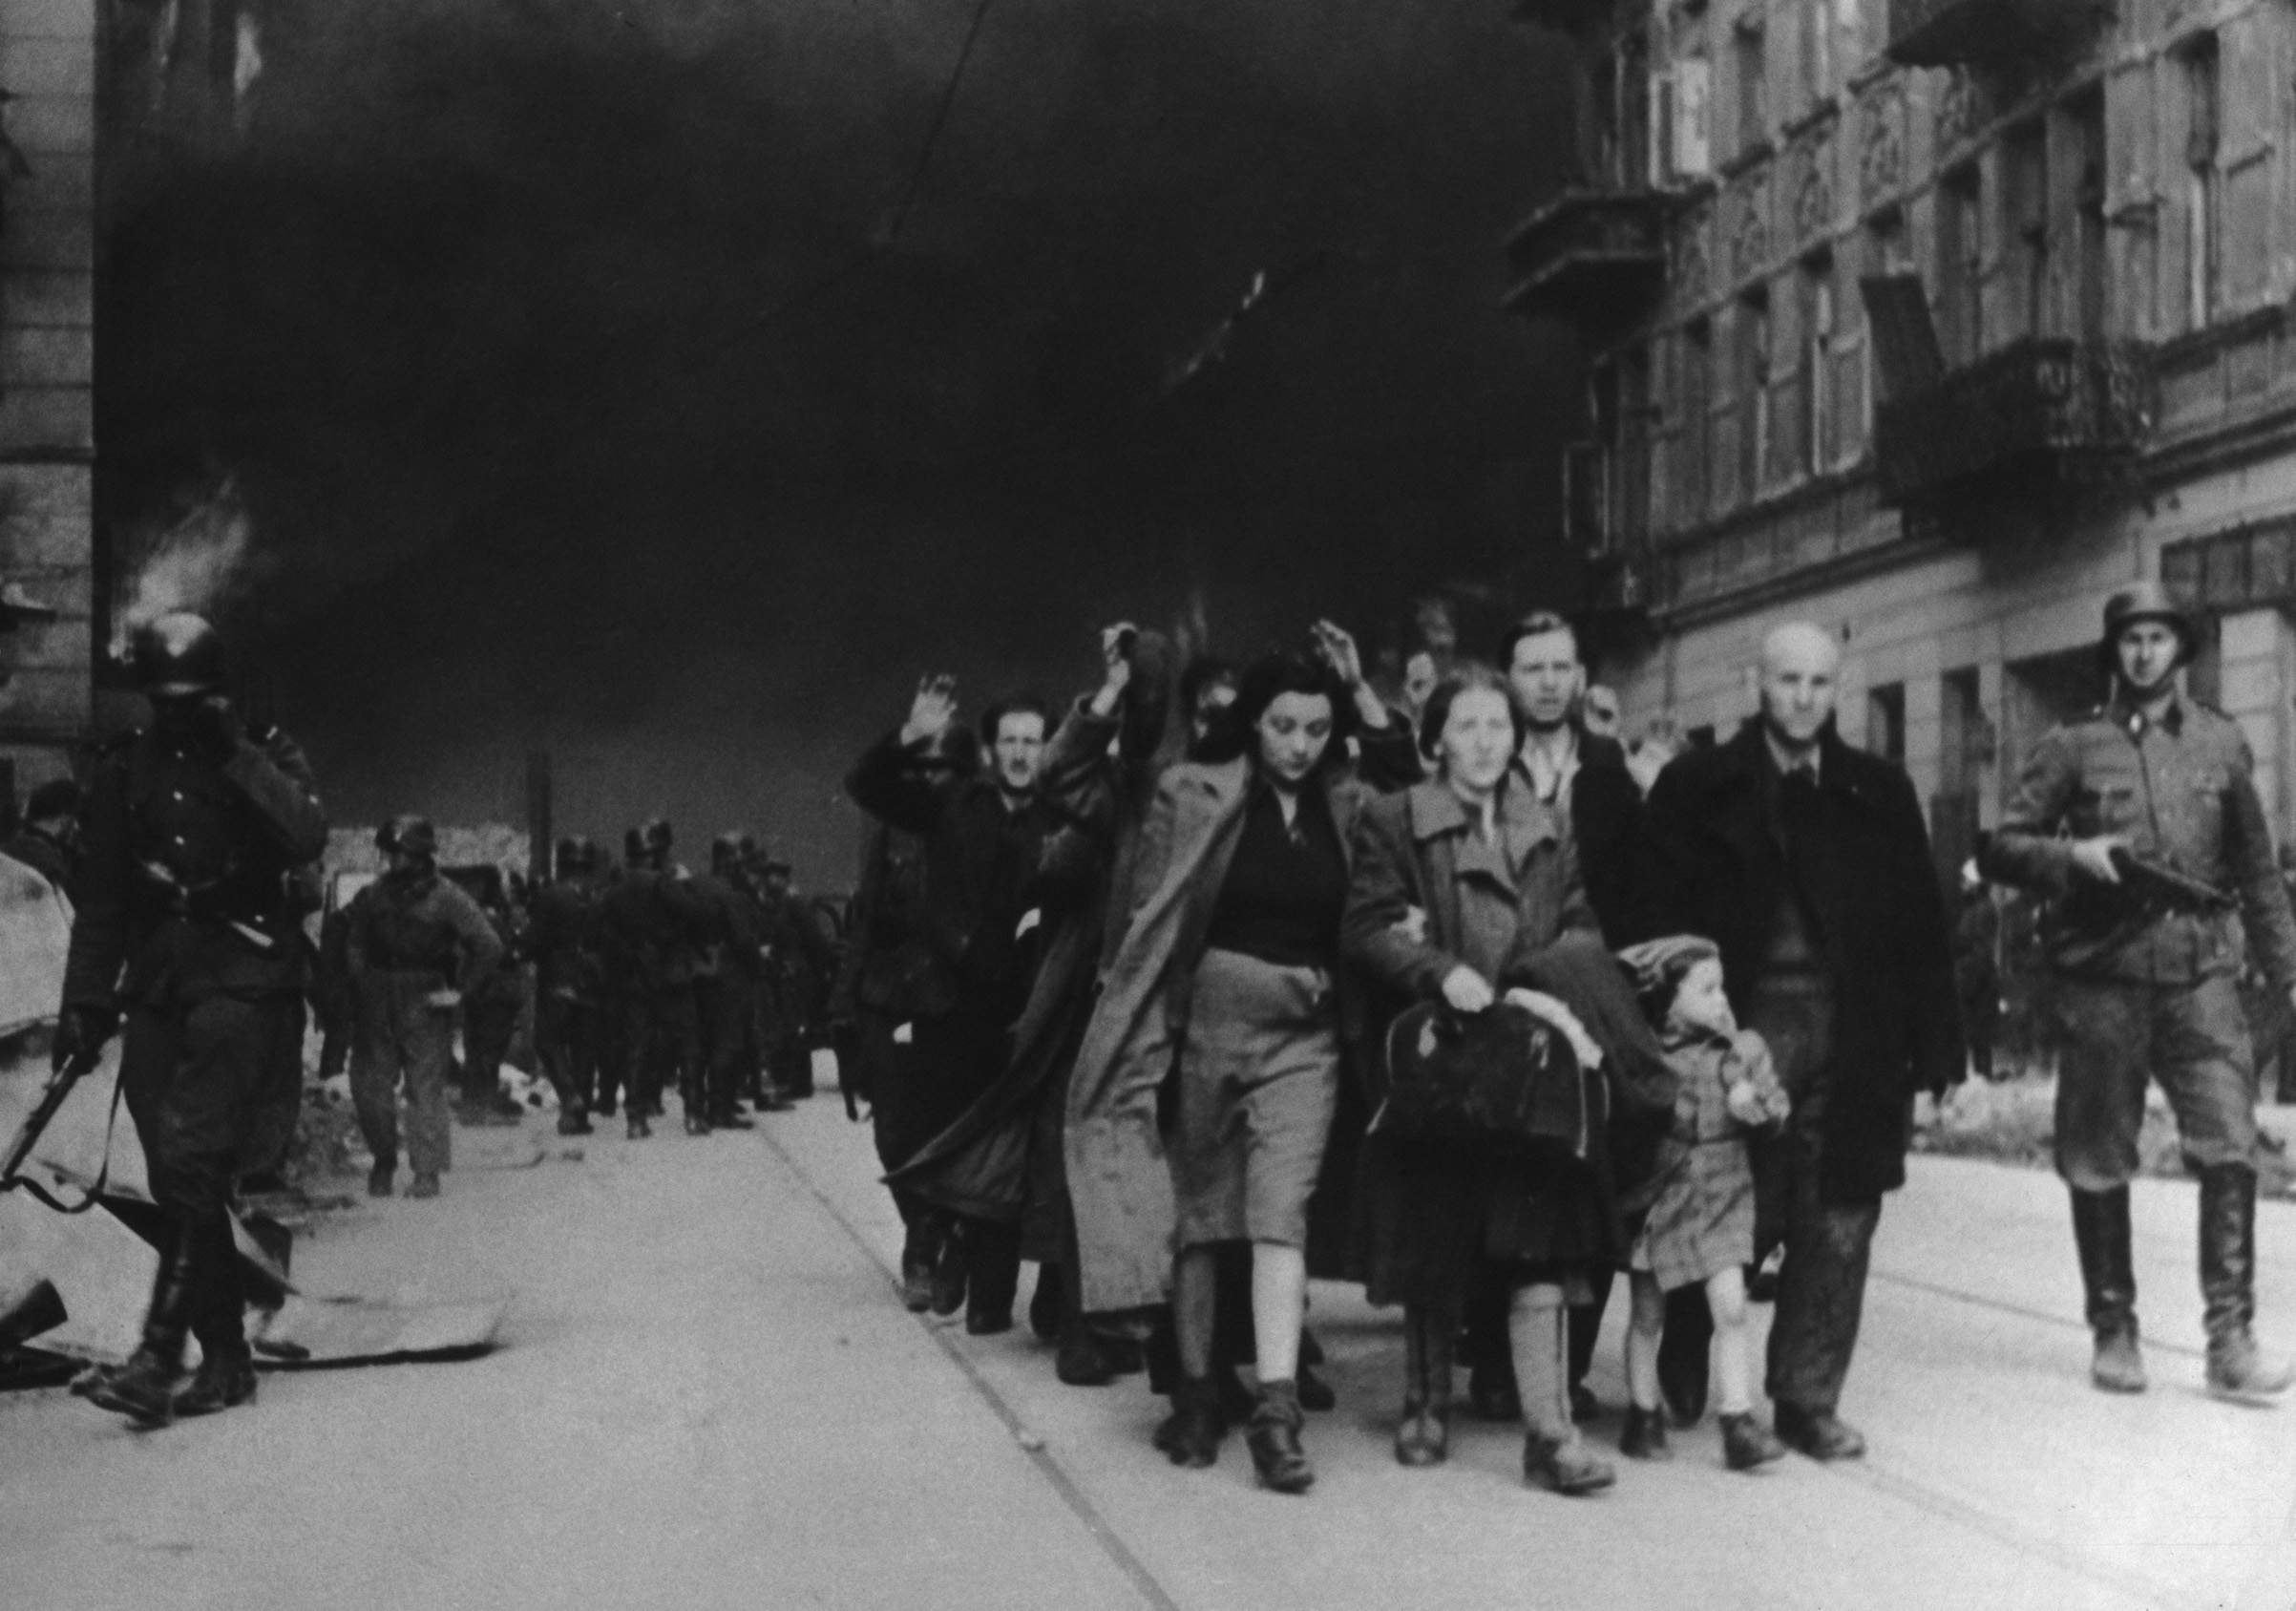 Jewish civilians are forced to march by SS soldiers in this 1943 photo during the destruction of the Warsaw Ghetto in Poland.